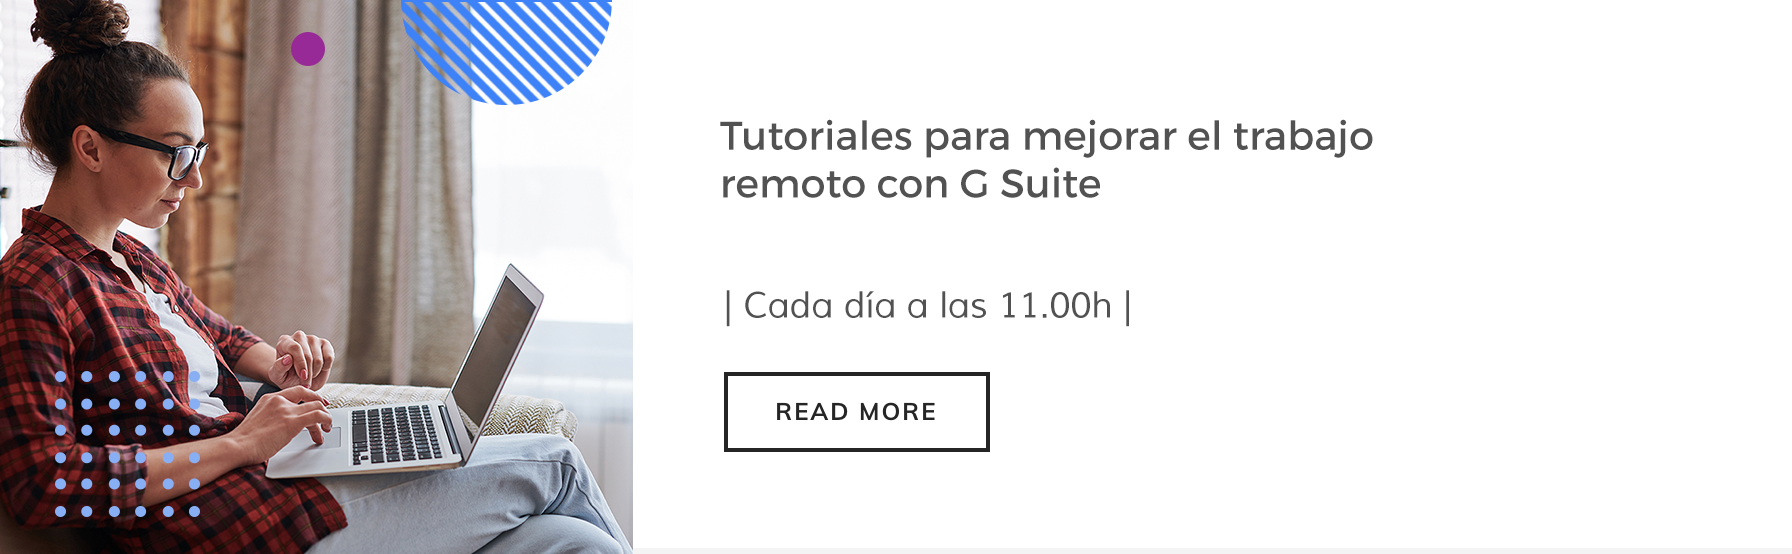 tutoriales-g-suite-evento